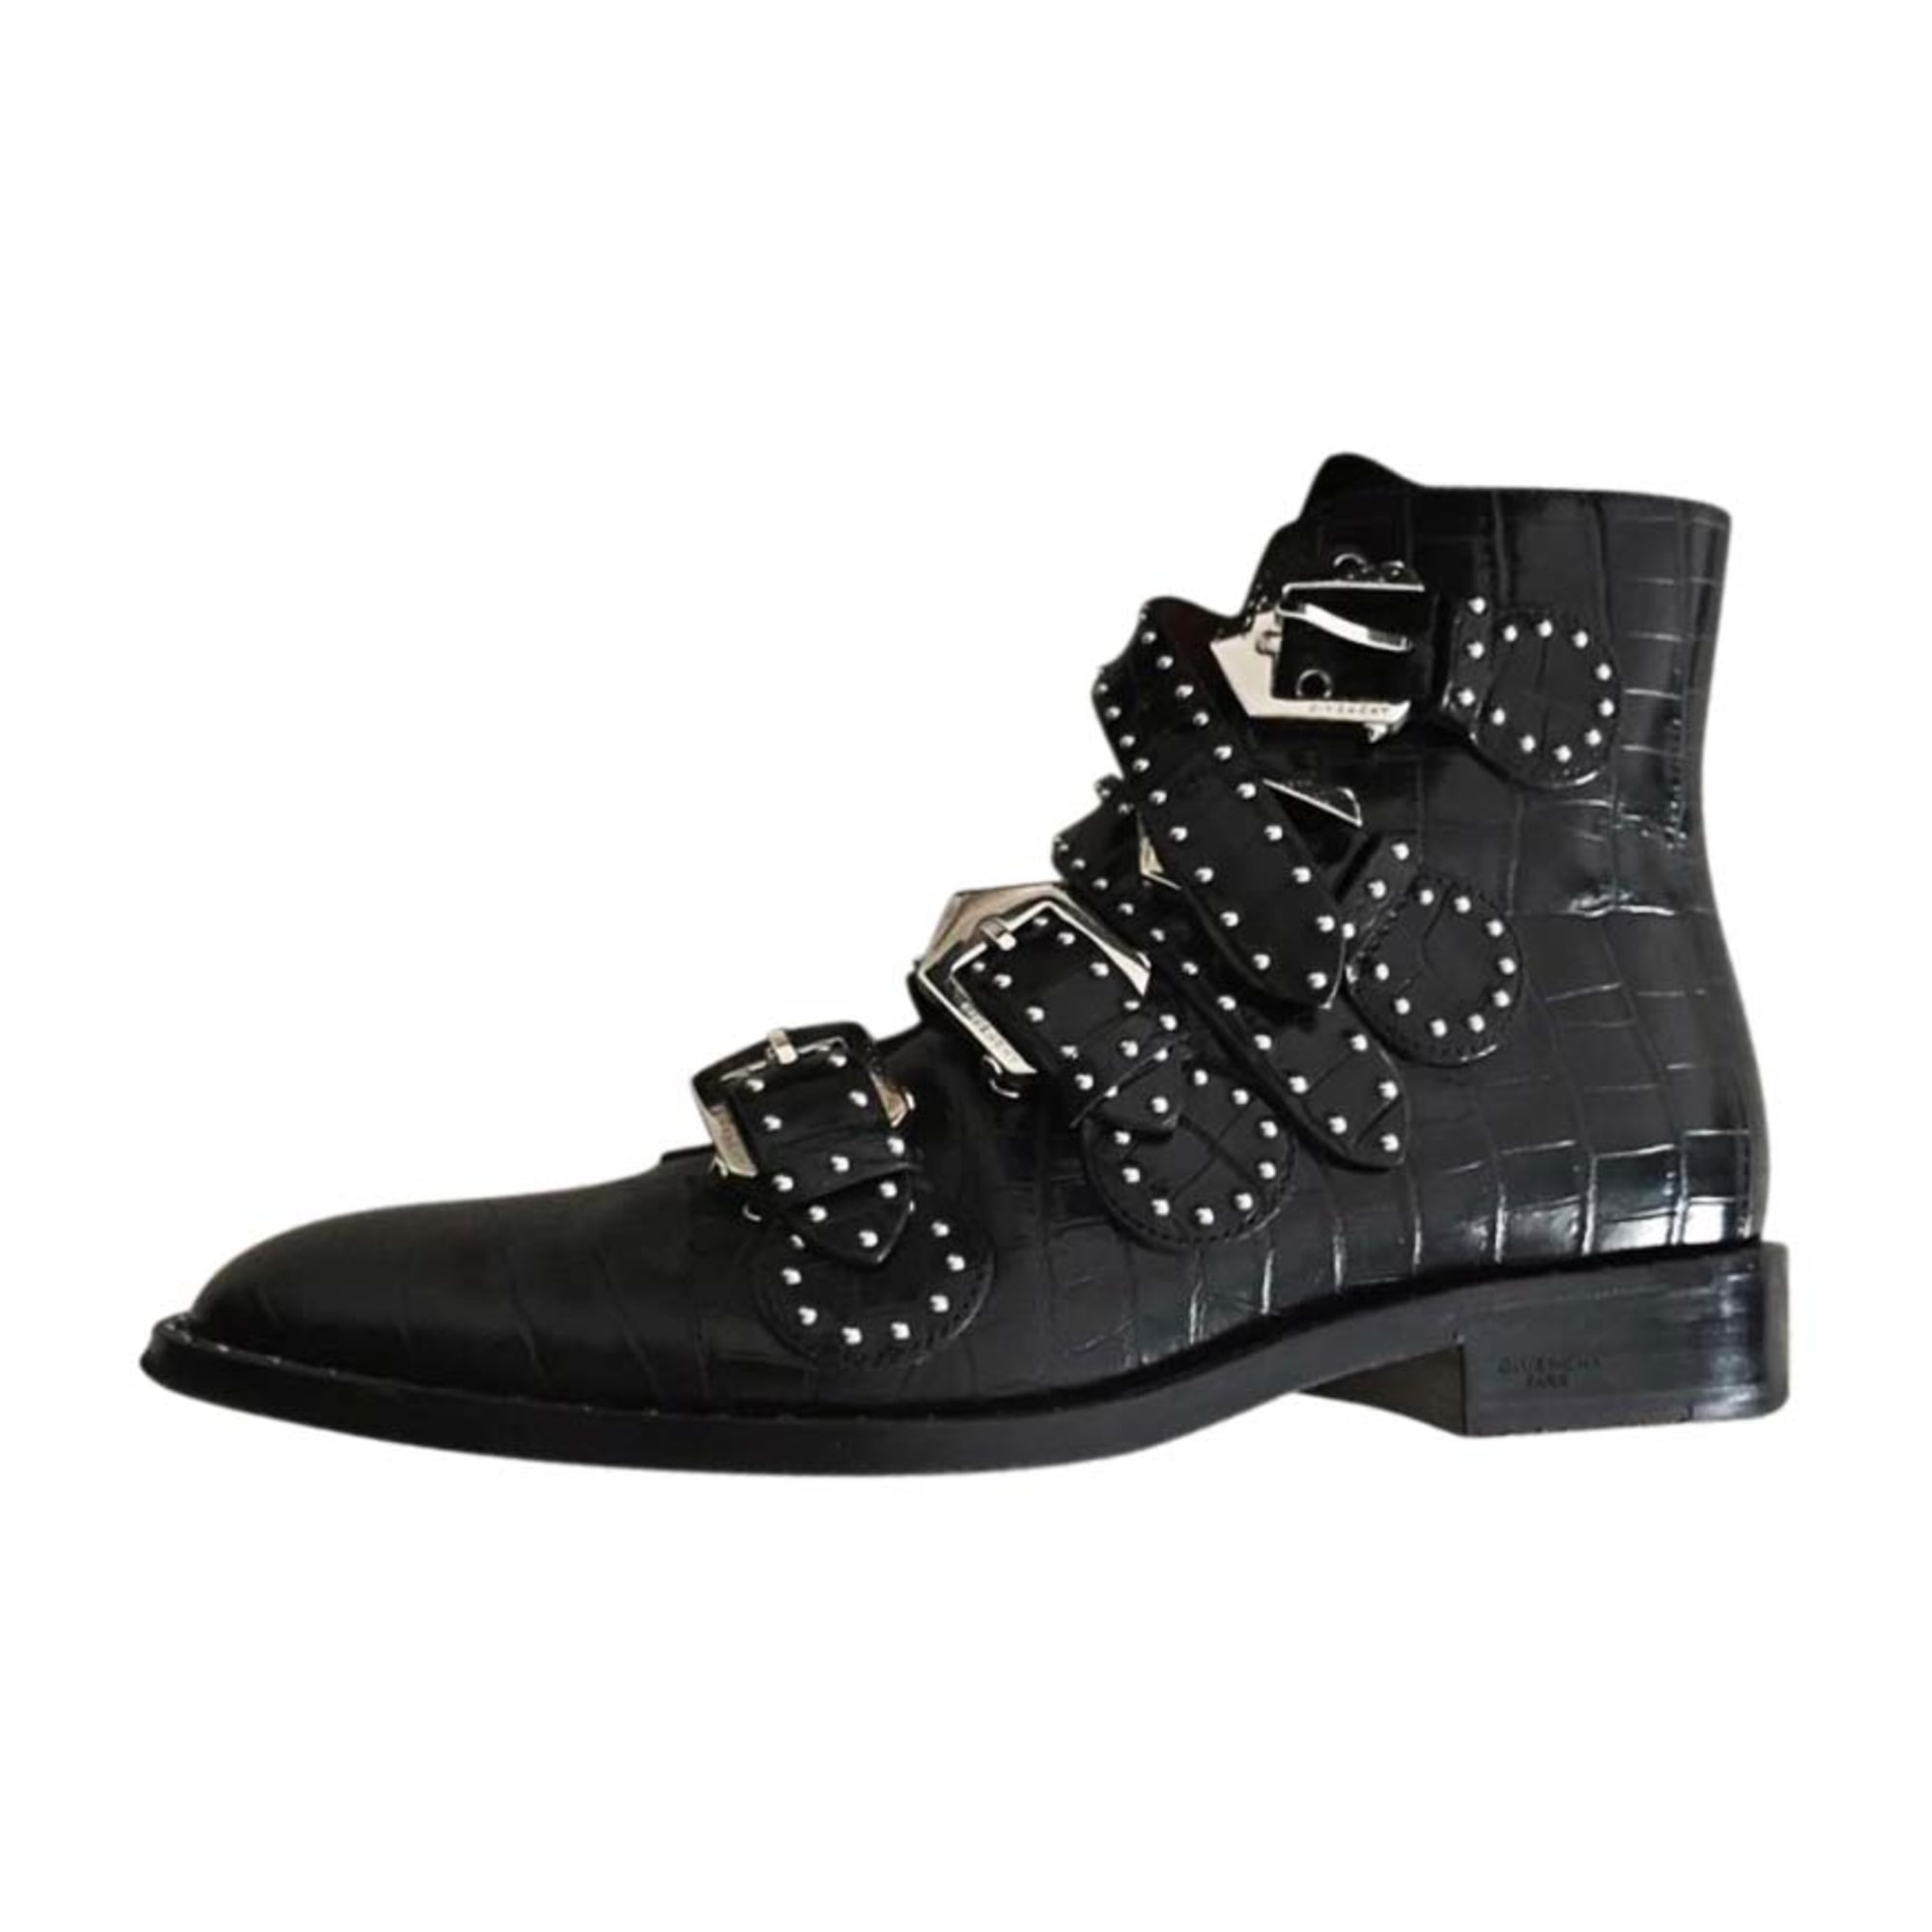 Givenchy Low Boots